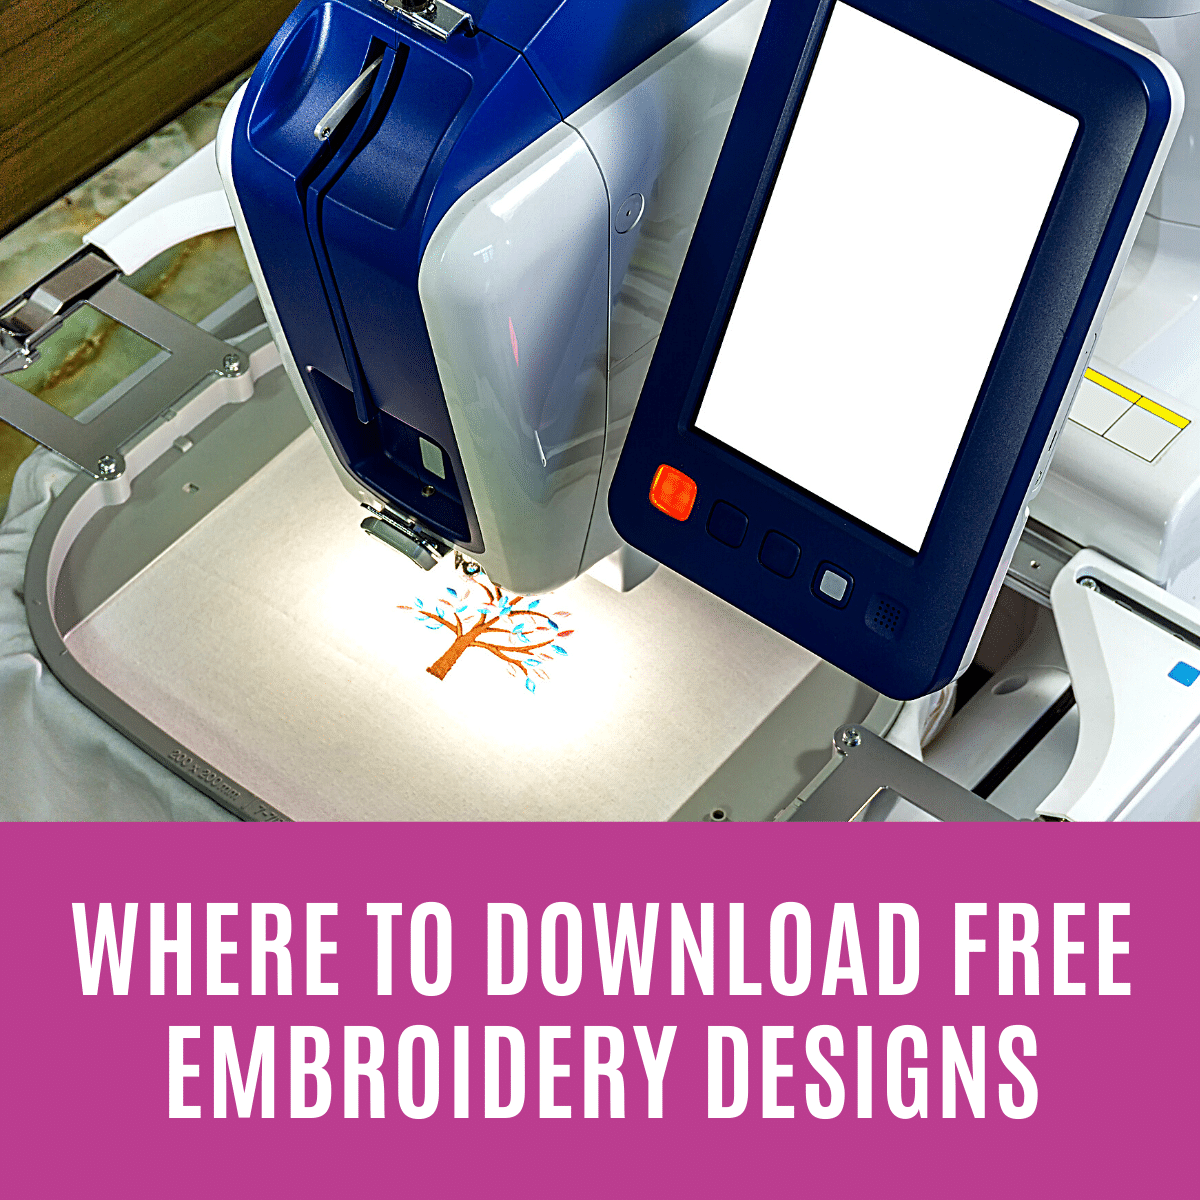 11 Sites With the Best Free Machine Embroidery Designs to Download